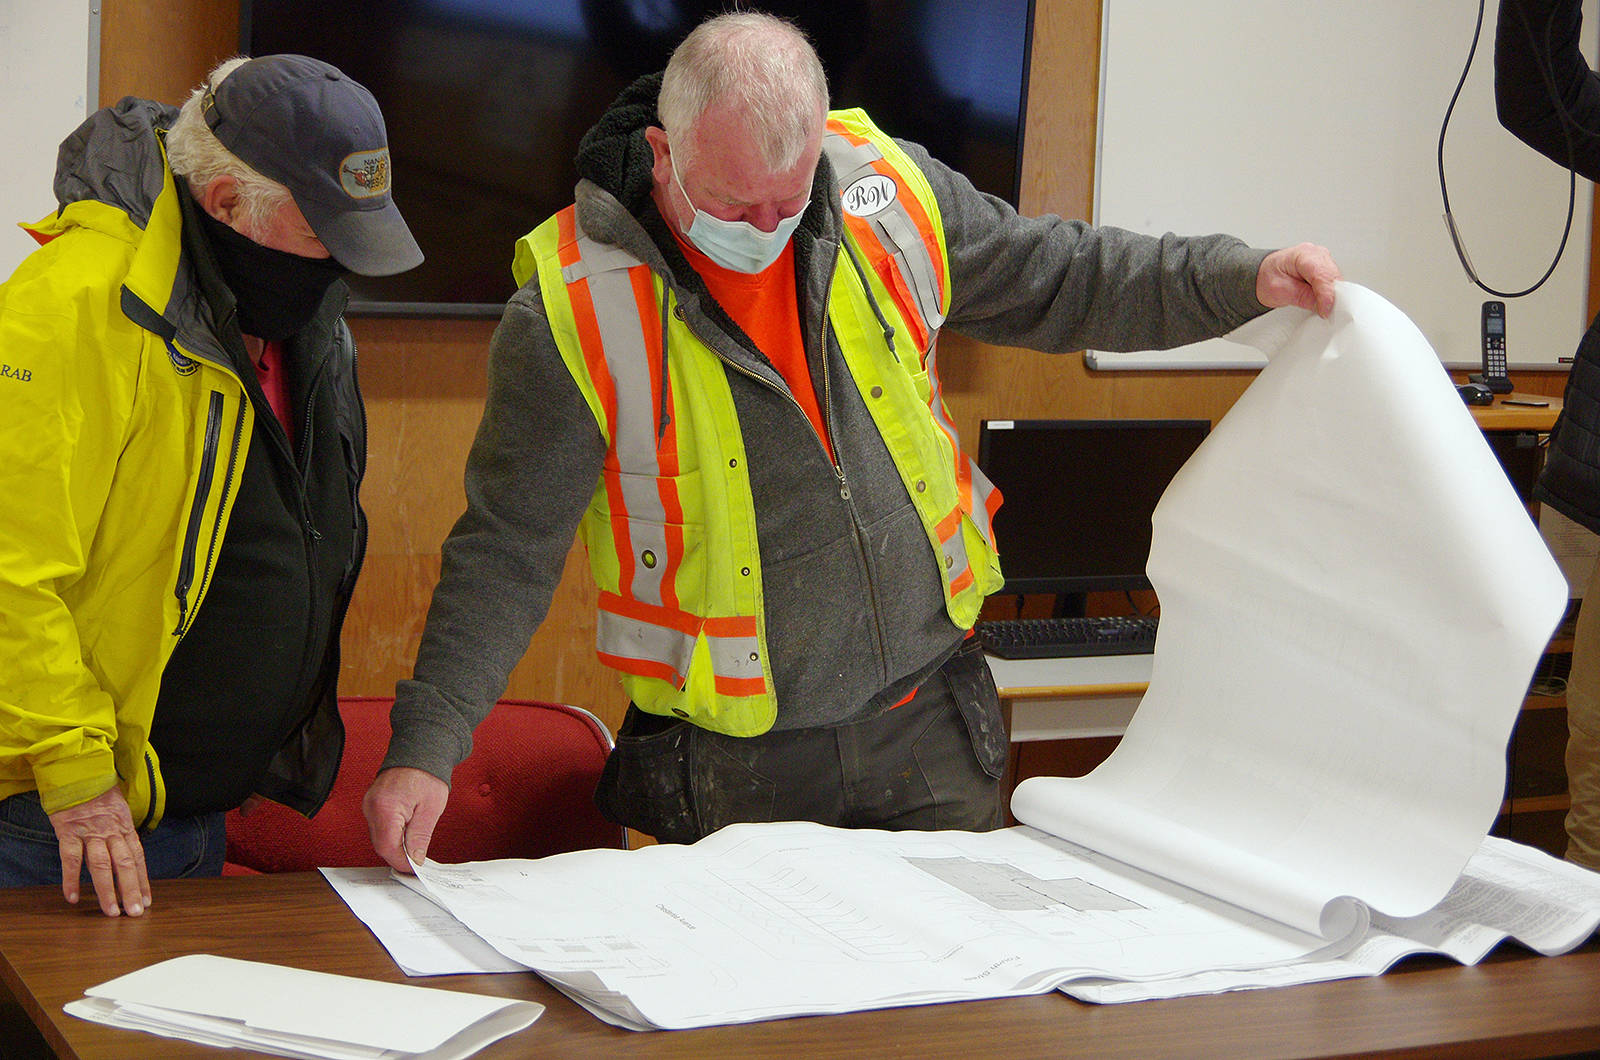 Kevin McNeill, Nanaimo Search and Rescue past president, left, looks over architectural drawings with Darren McKenna, site superintendent with construction contractor R.W. (Bob) Wall, for renovations to NSAR's headquarters that got underway Tuesday, Jan. 26. (Chris Bush/News Bulletin)